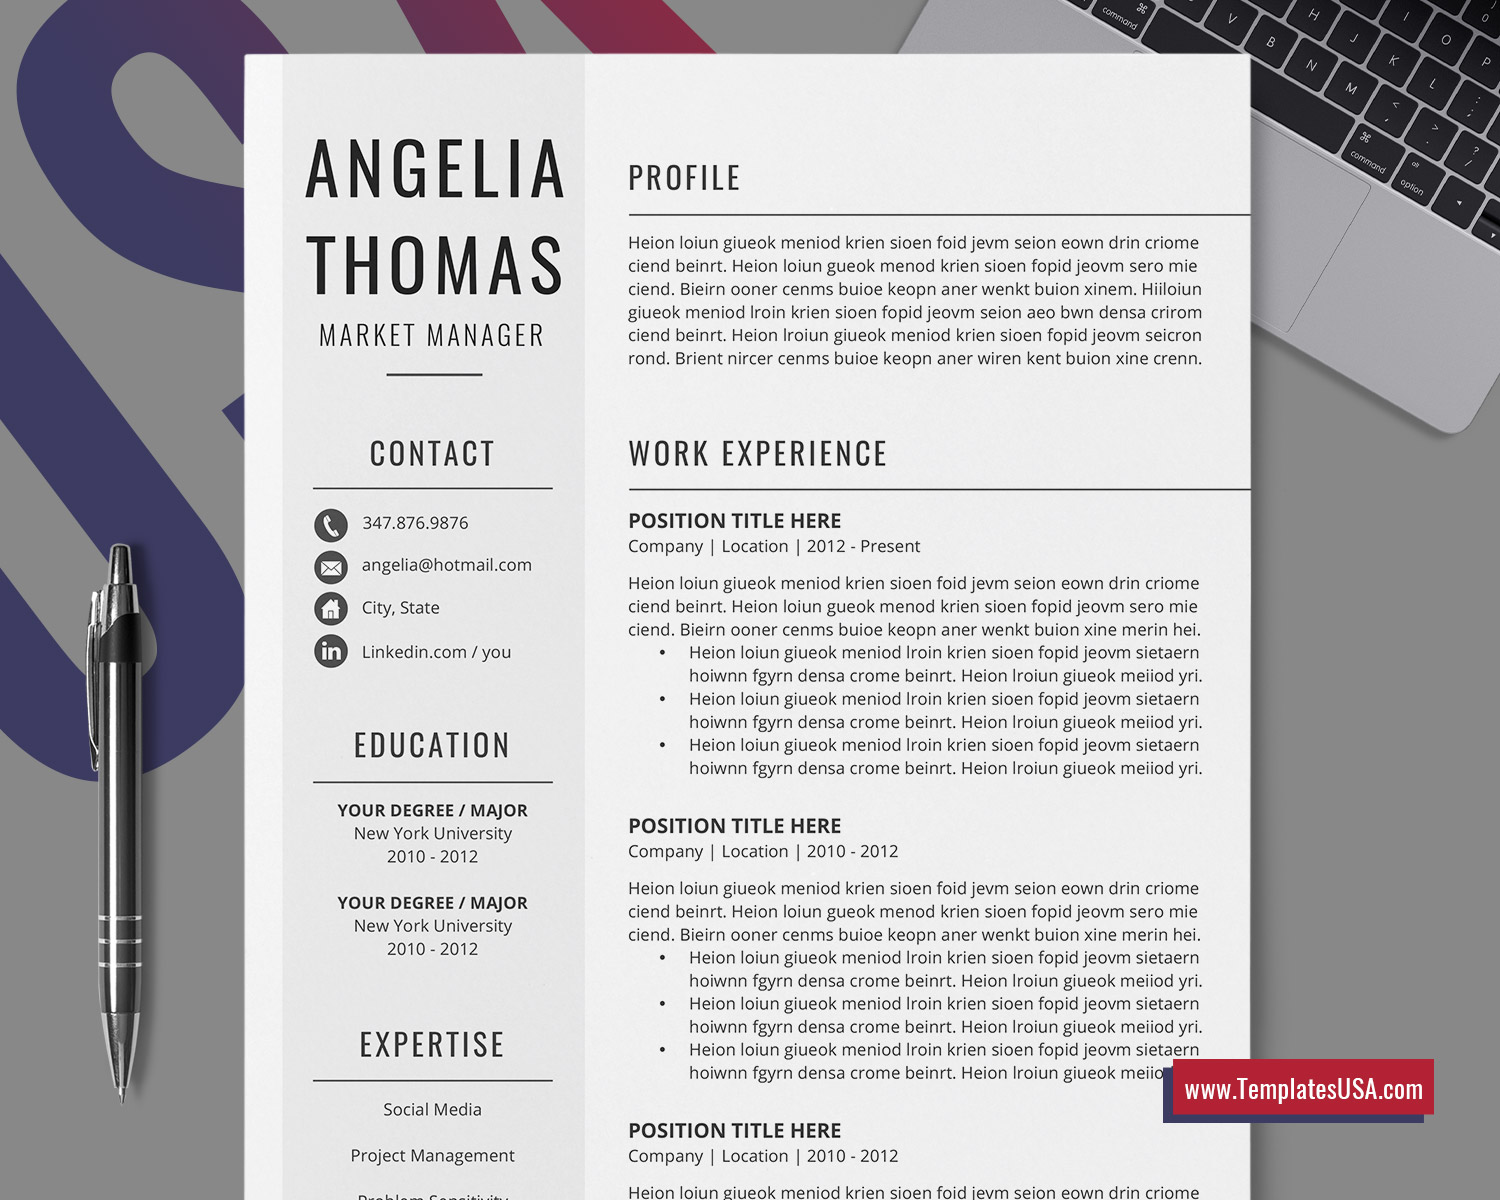 Minimalist Resume Template For Ms Word Simple Cv Template Design